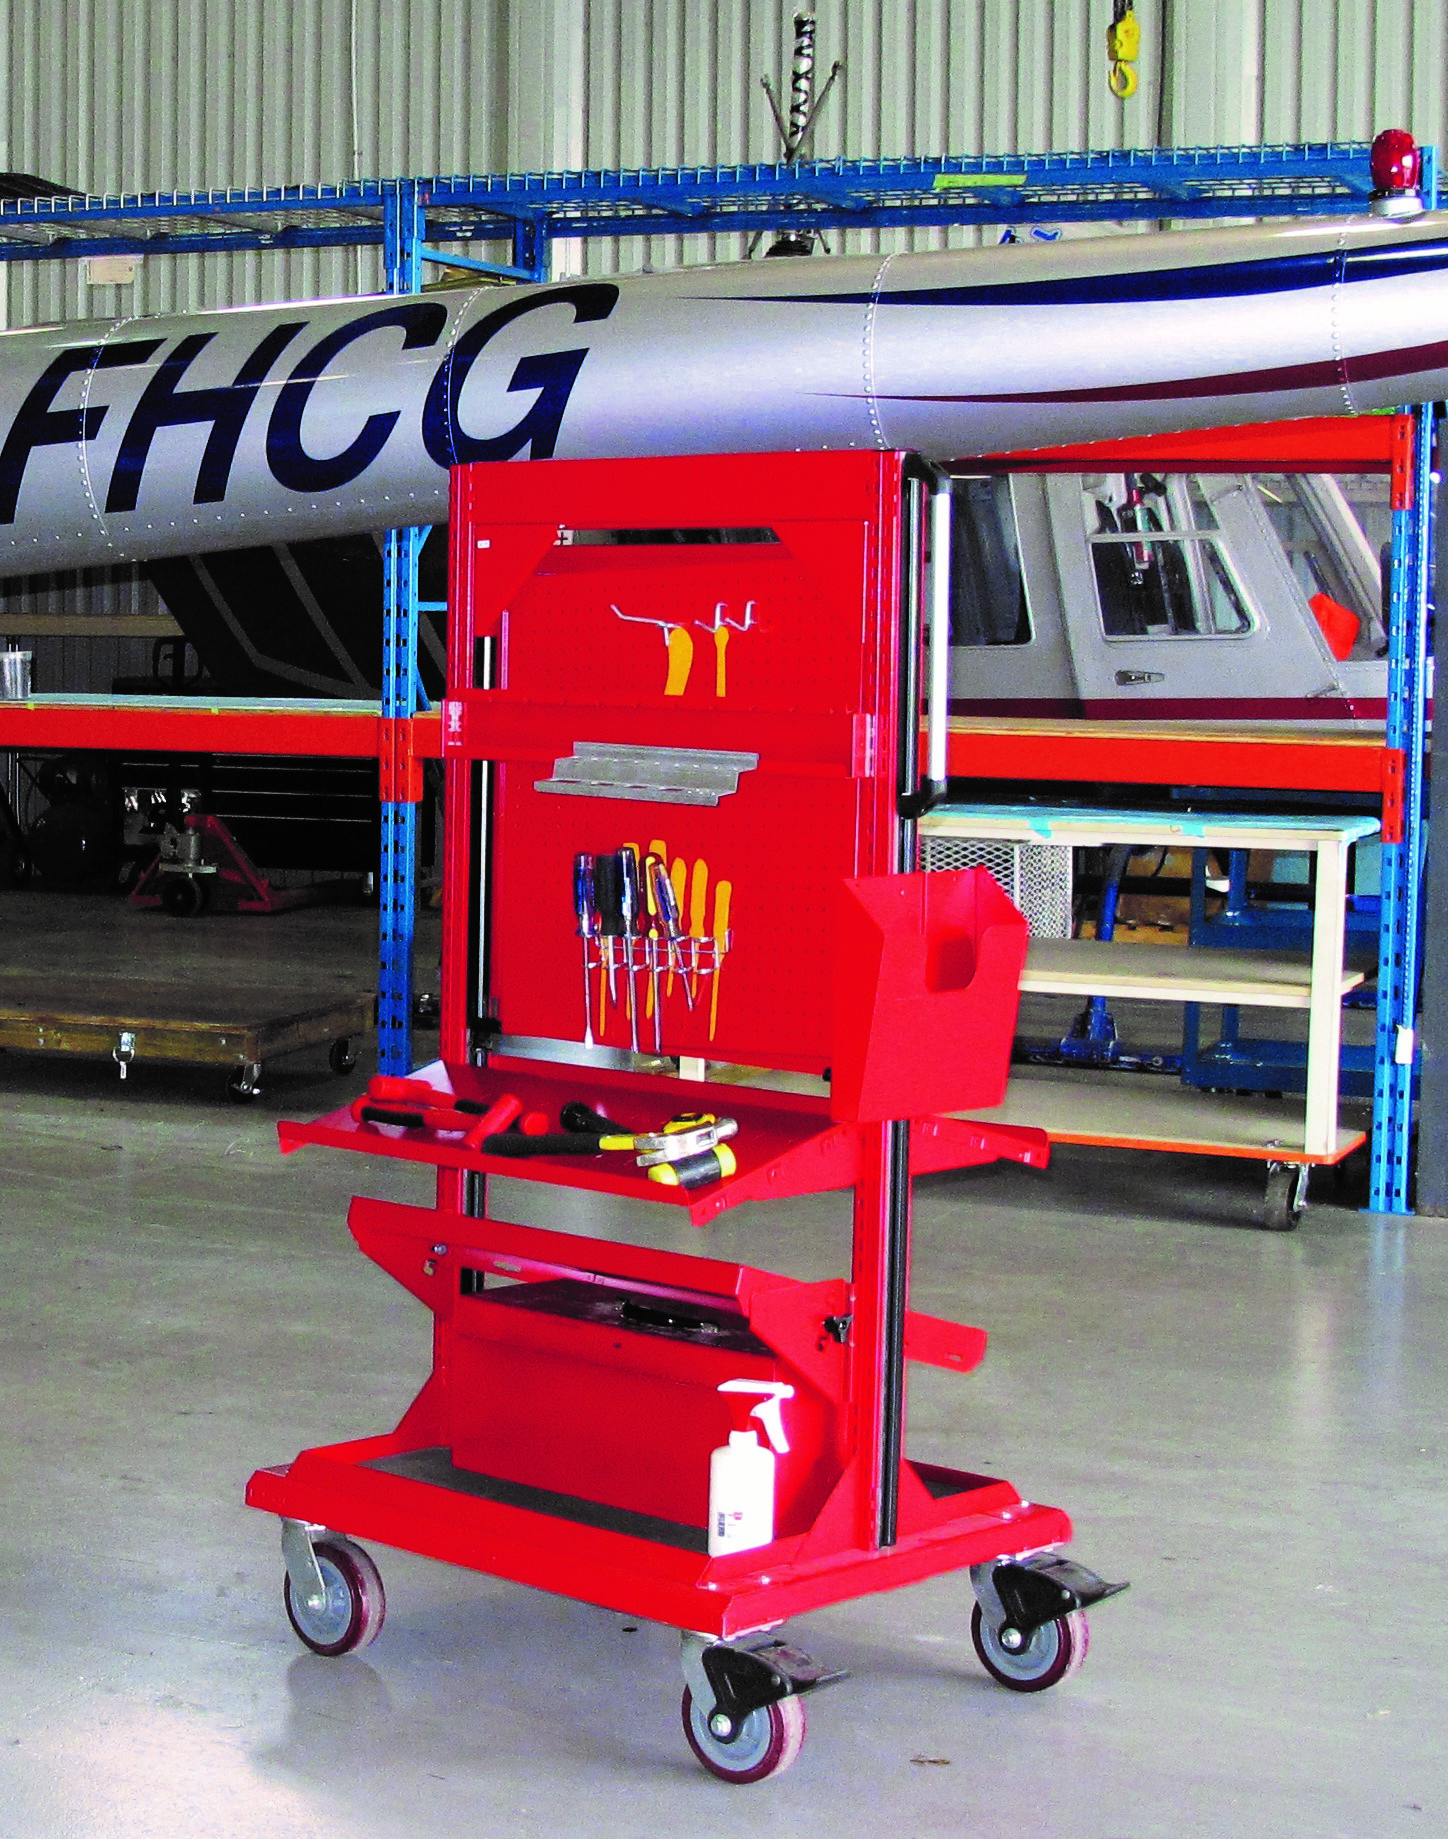 Freestanding Tool Cart in Hangar